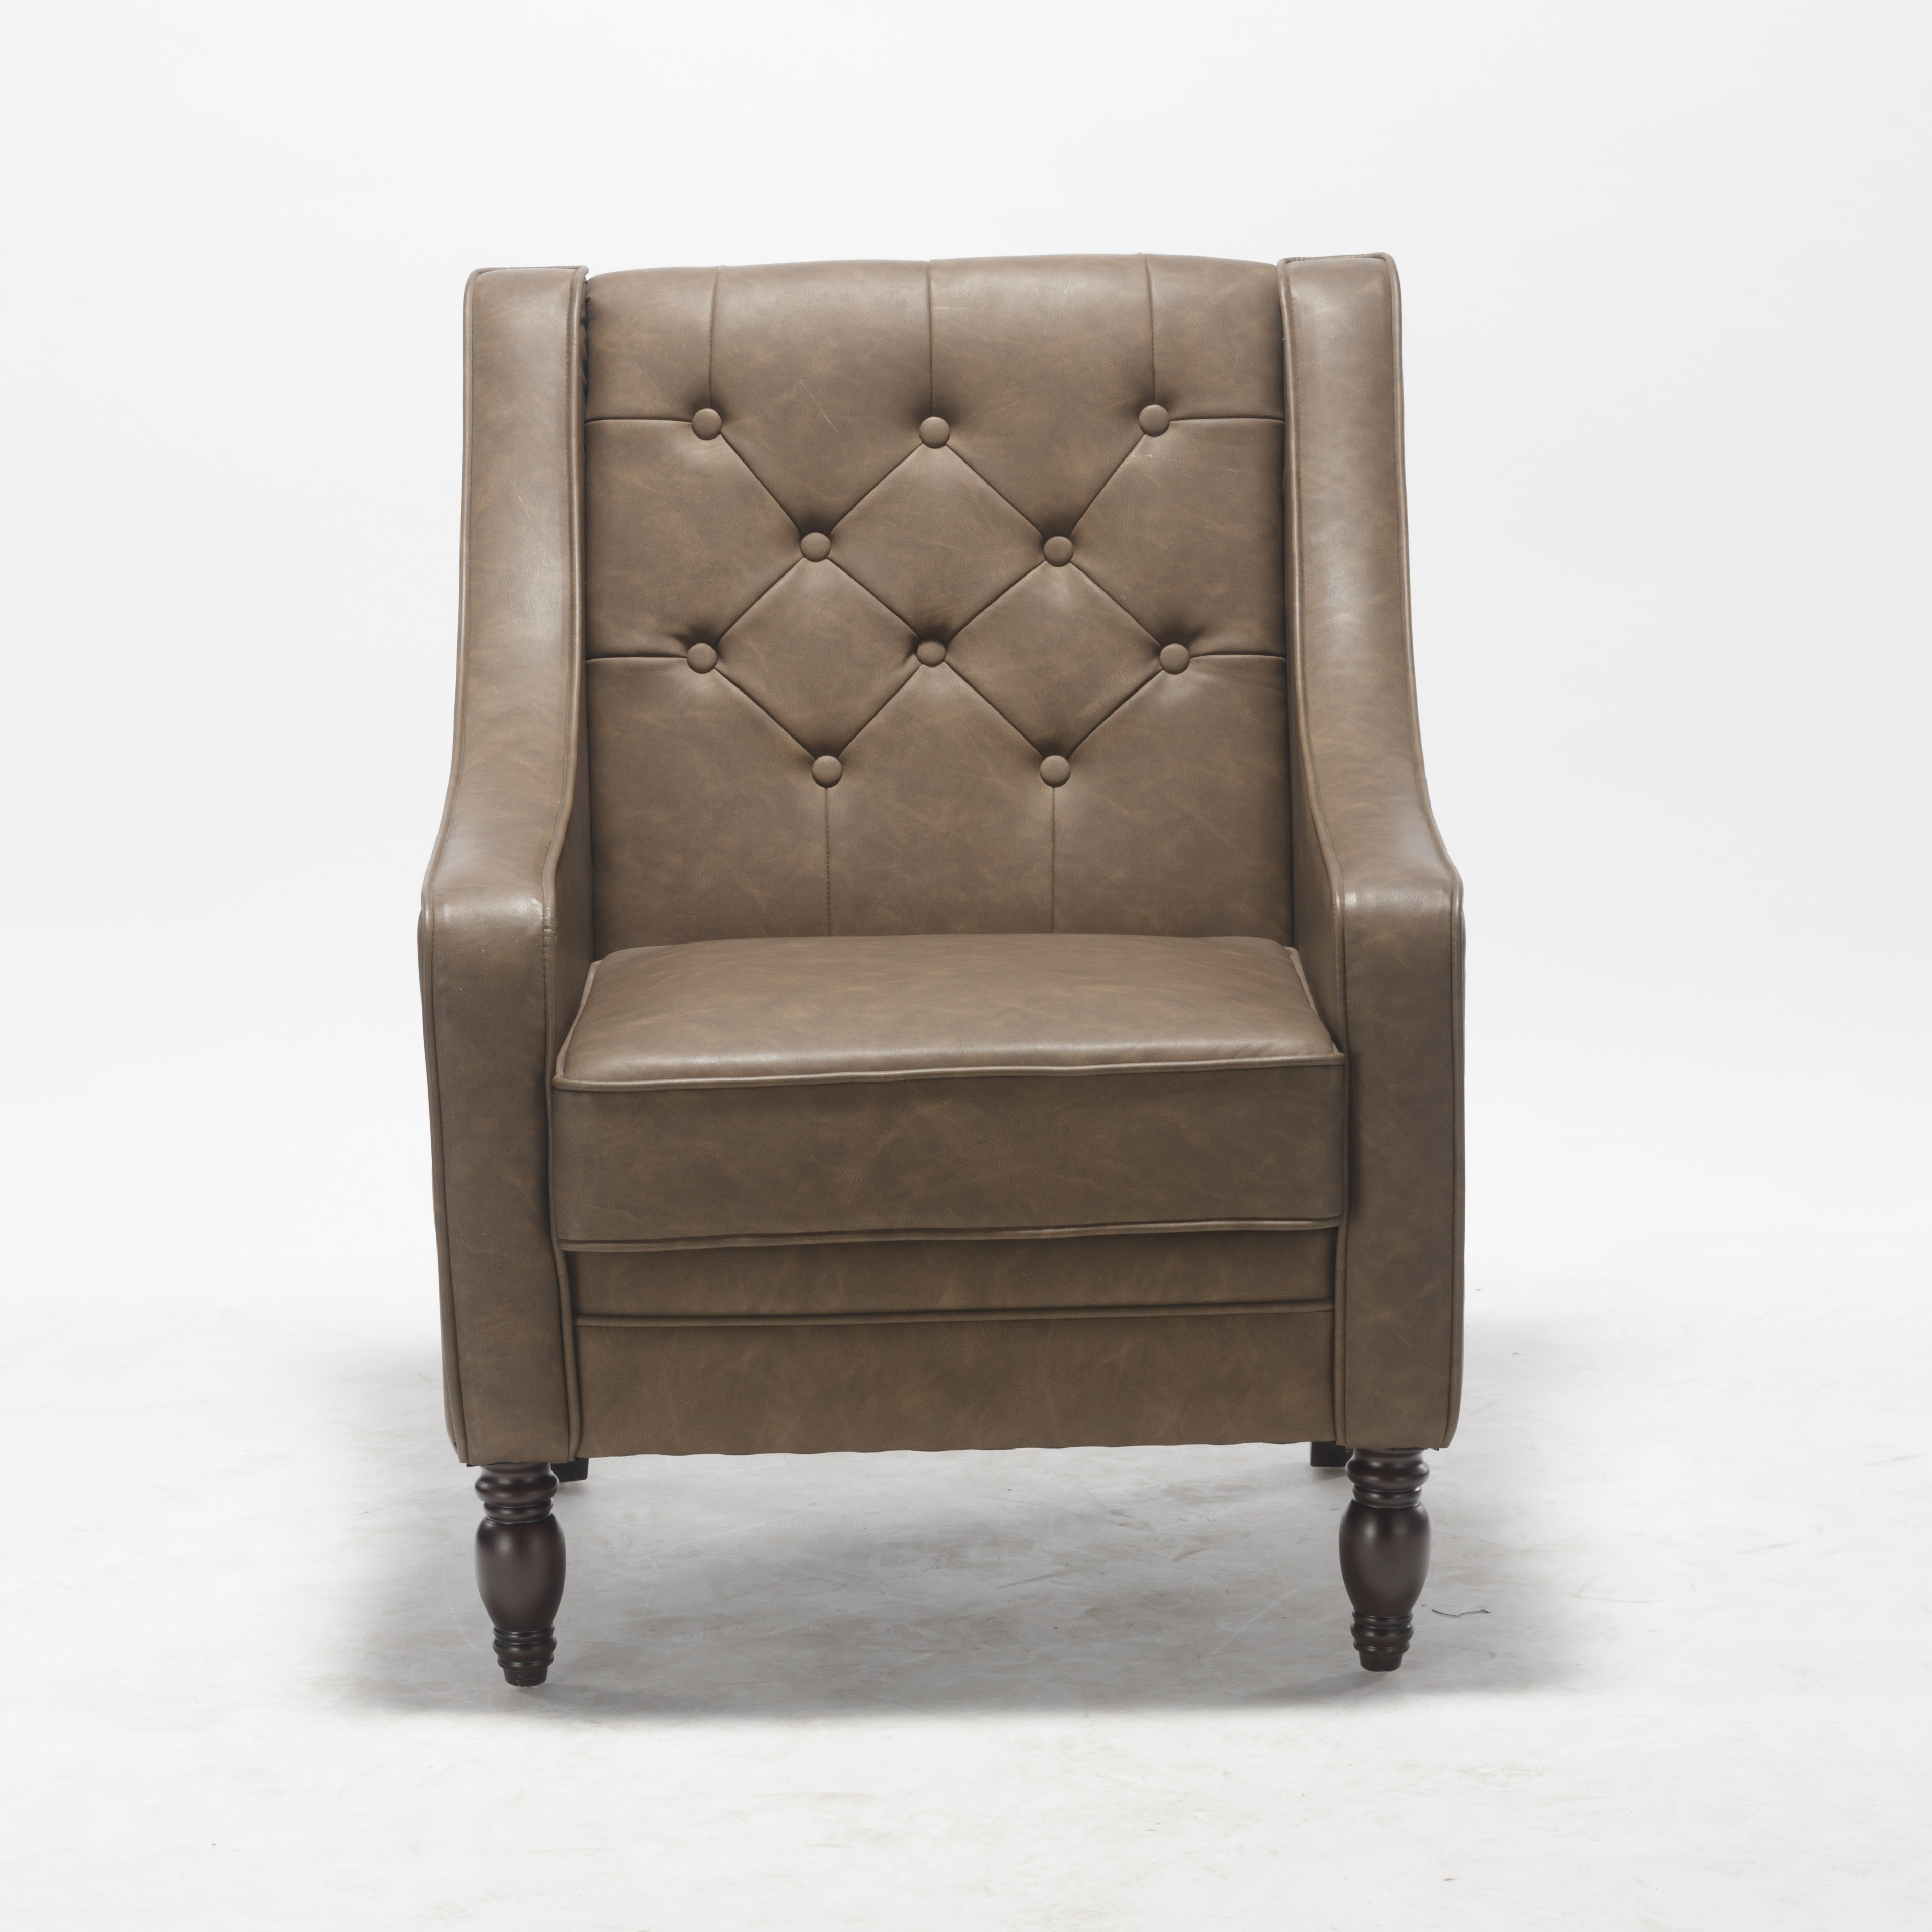 Hotel Lounge Chair Armchair Accent Chair Living Room Chair Oem Home Furniture Single Sofa Chairs Antique Chair Buy Antique Chair Sofa Chair Living